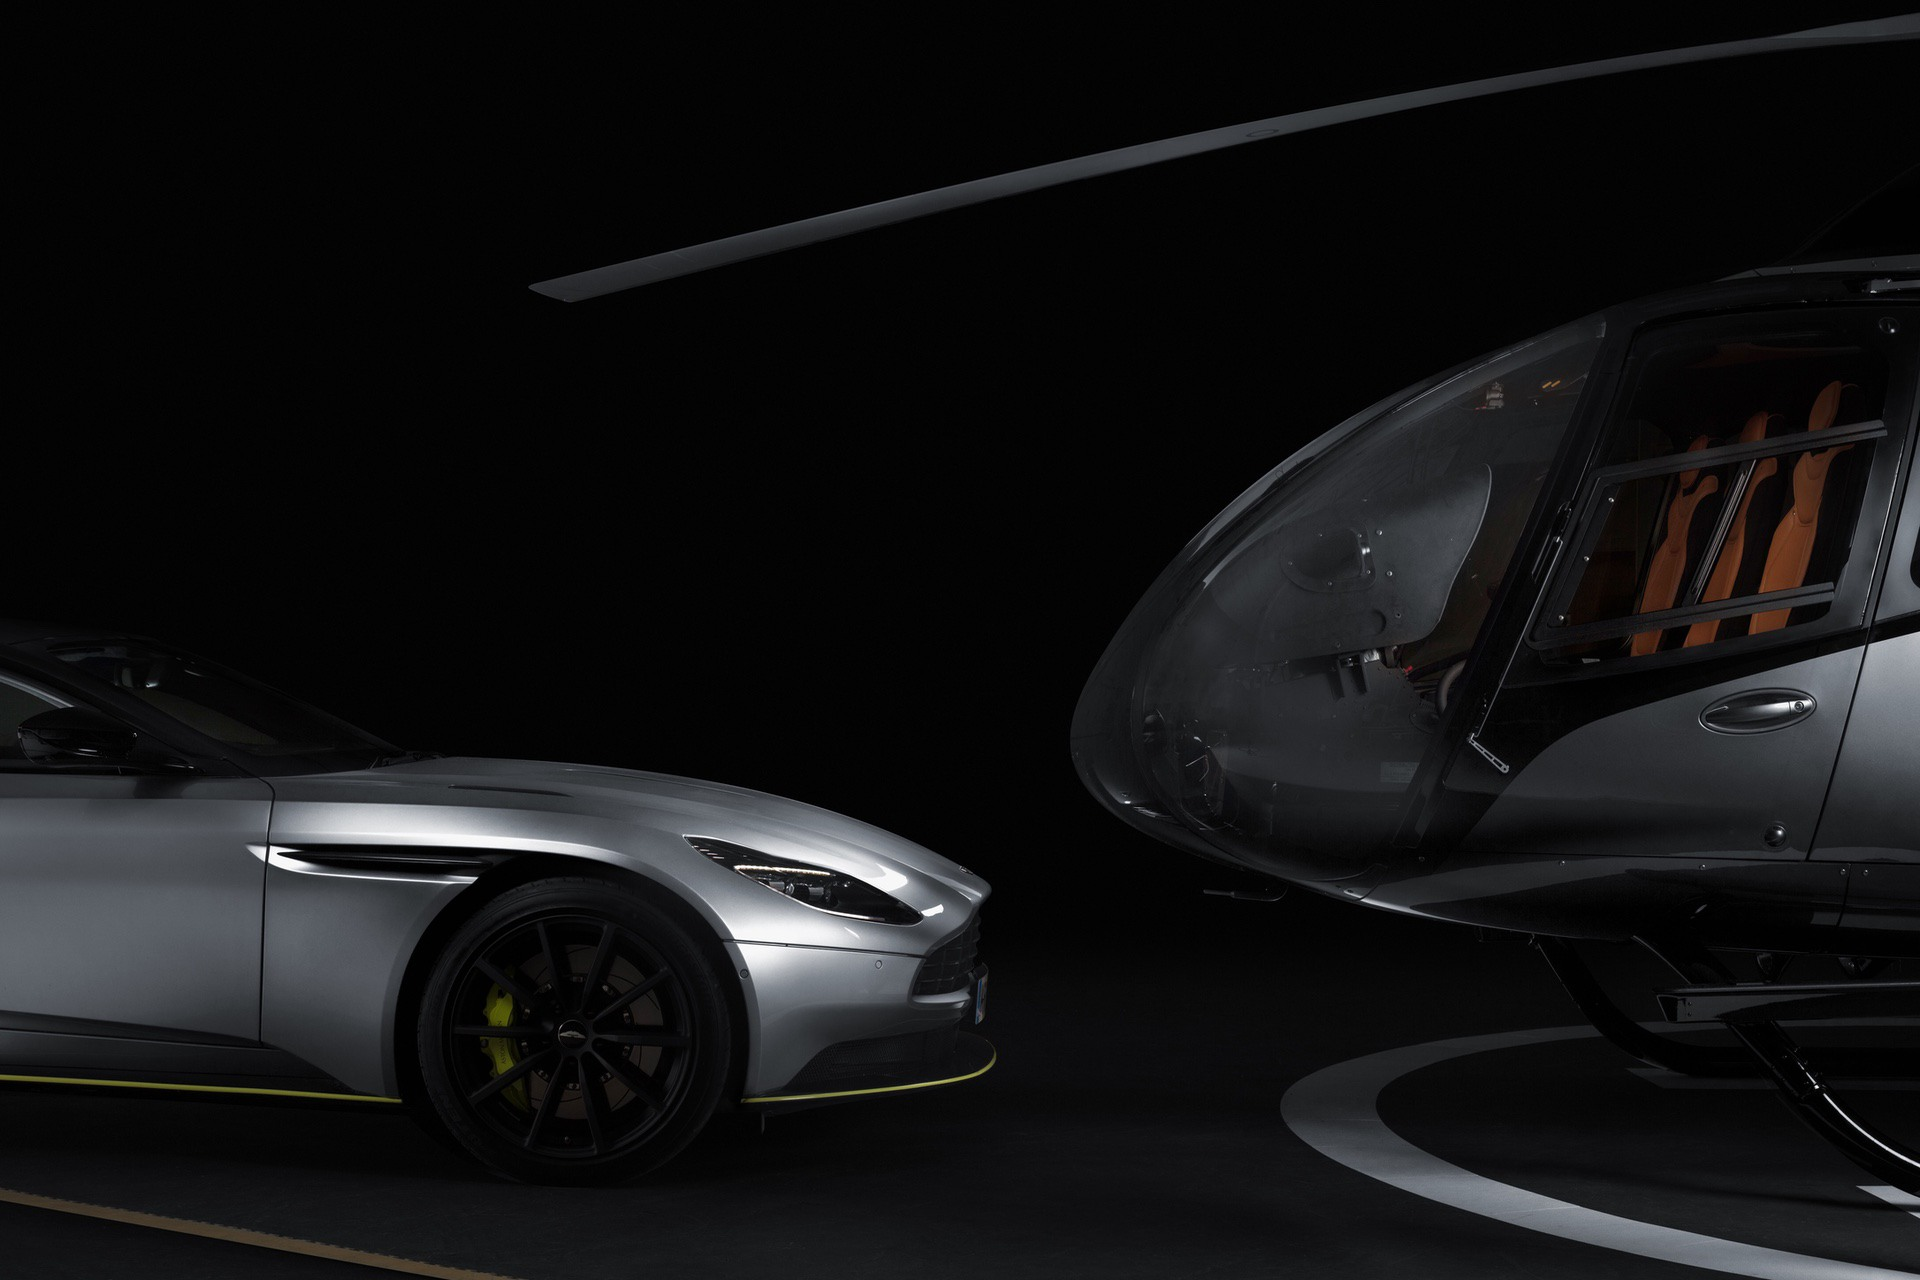 ACH130_Aston_Martin_Edition_0013